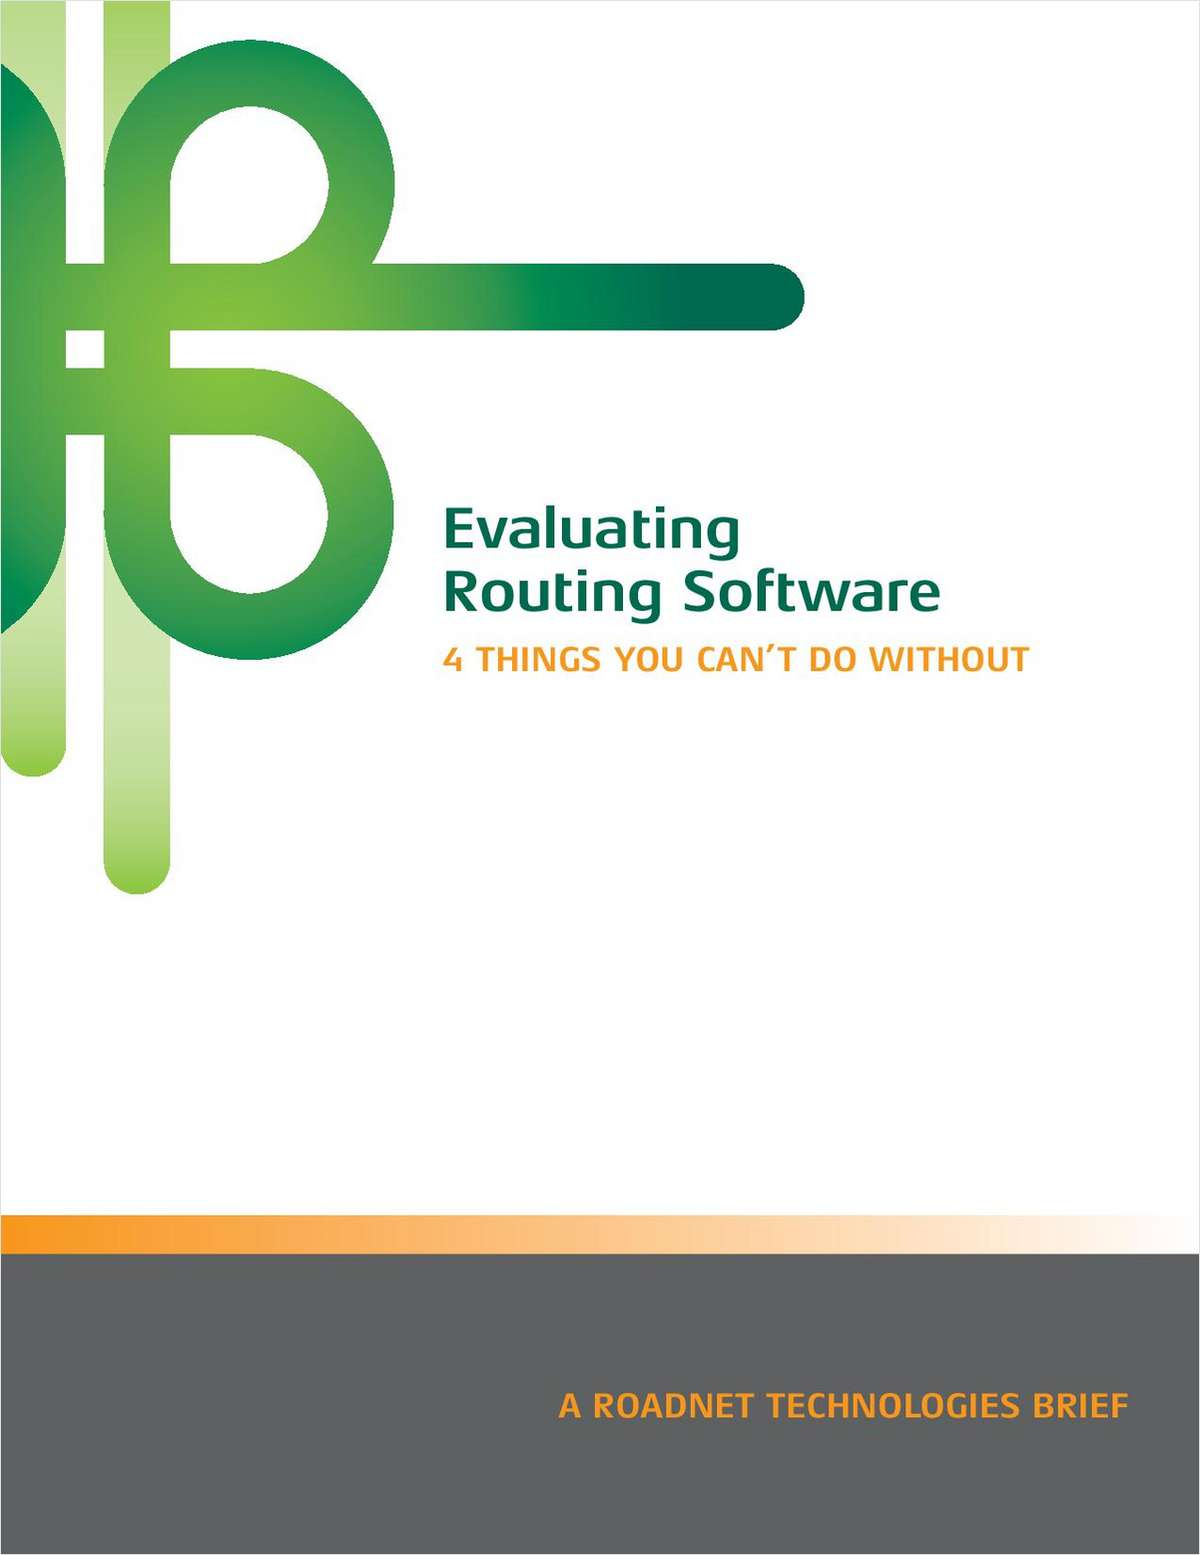 Evaluating Routing Software: 4 Things You Can't Do Without